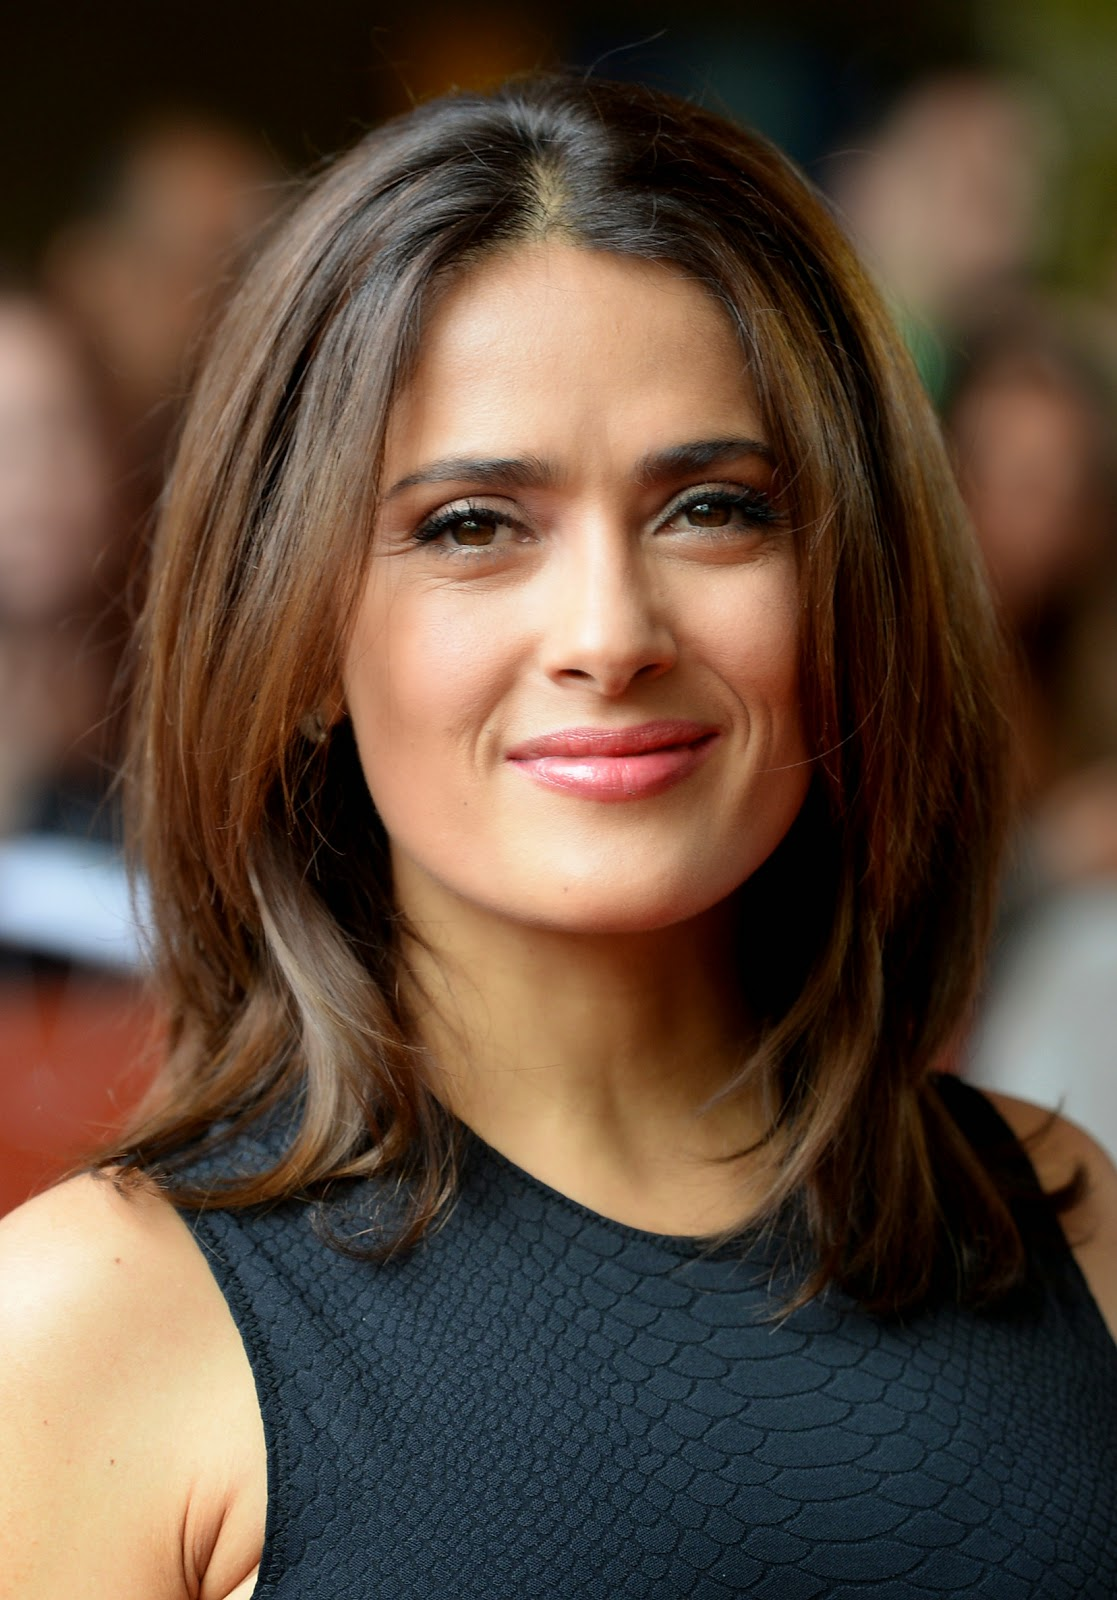 Salma Hayek Hd Pictures Hd Wallpapers Of Salma Hayek